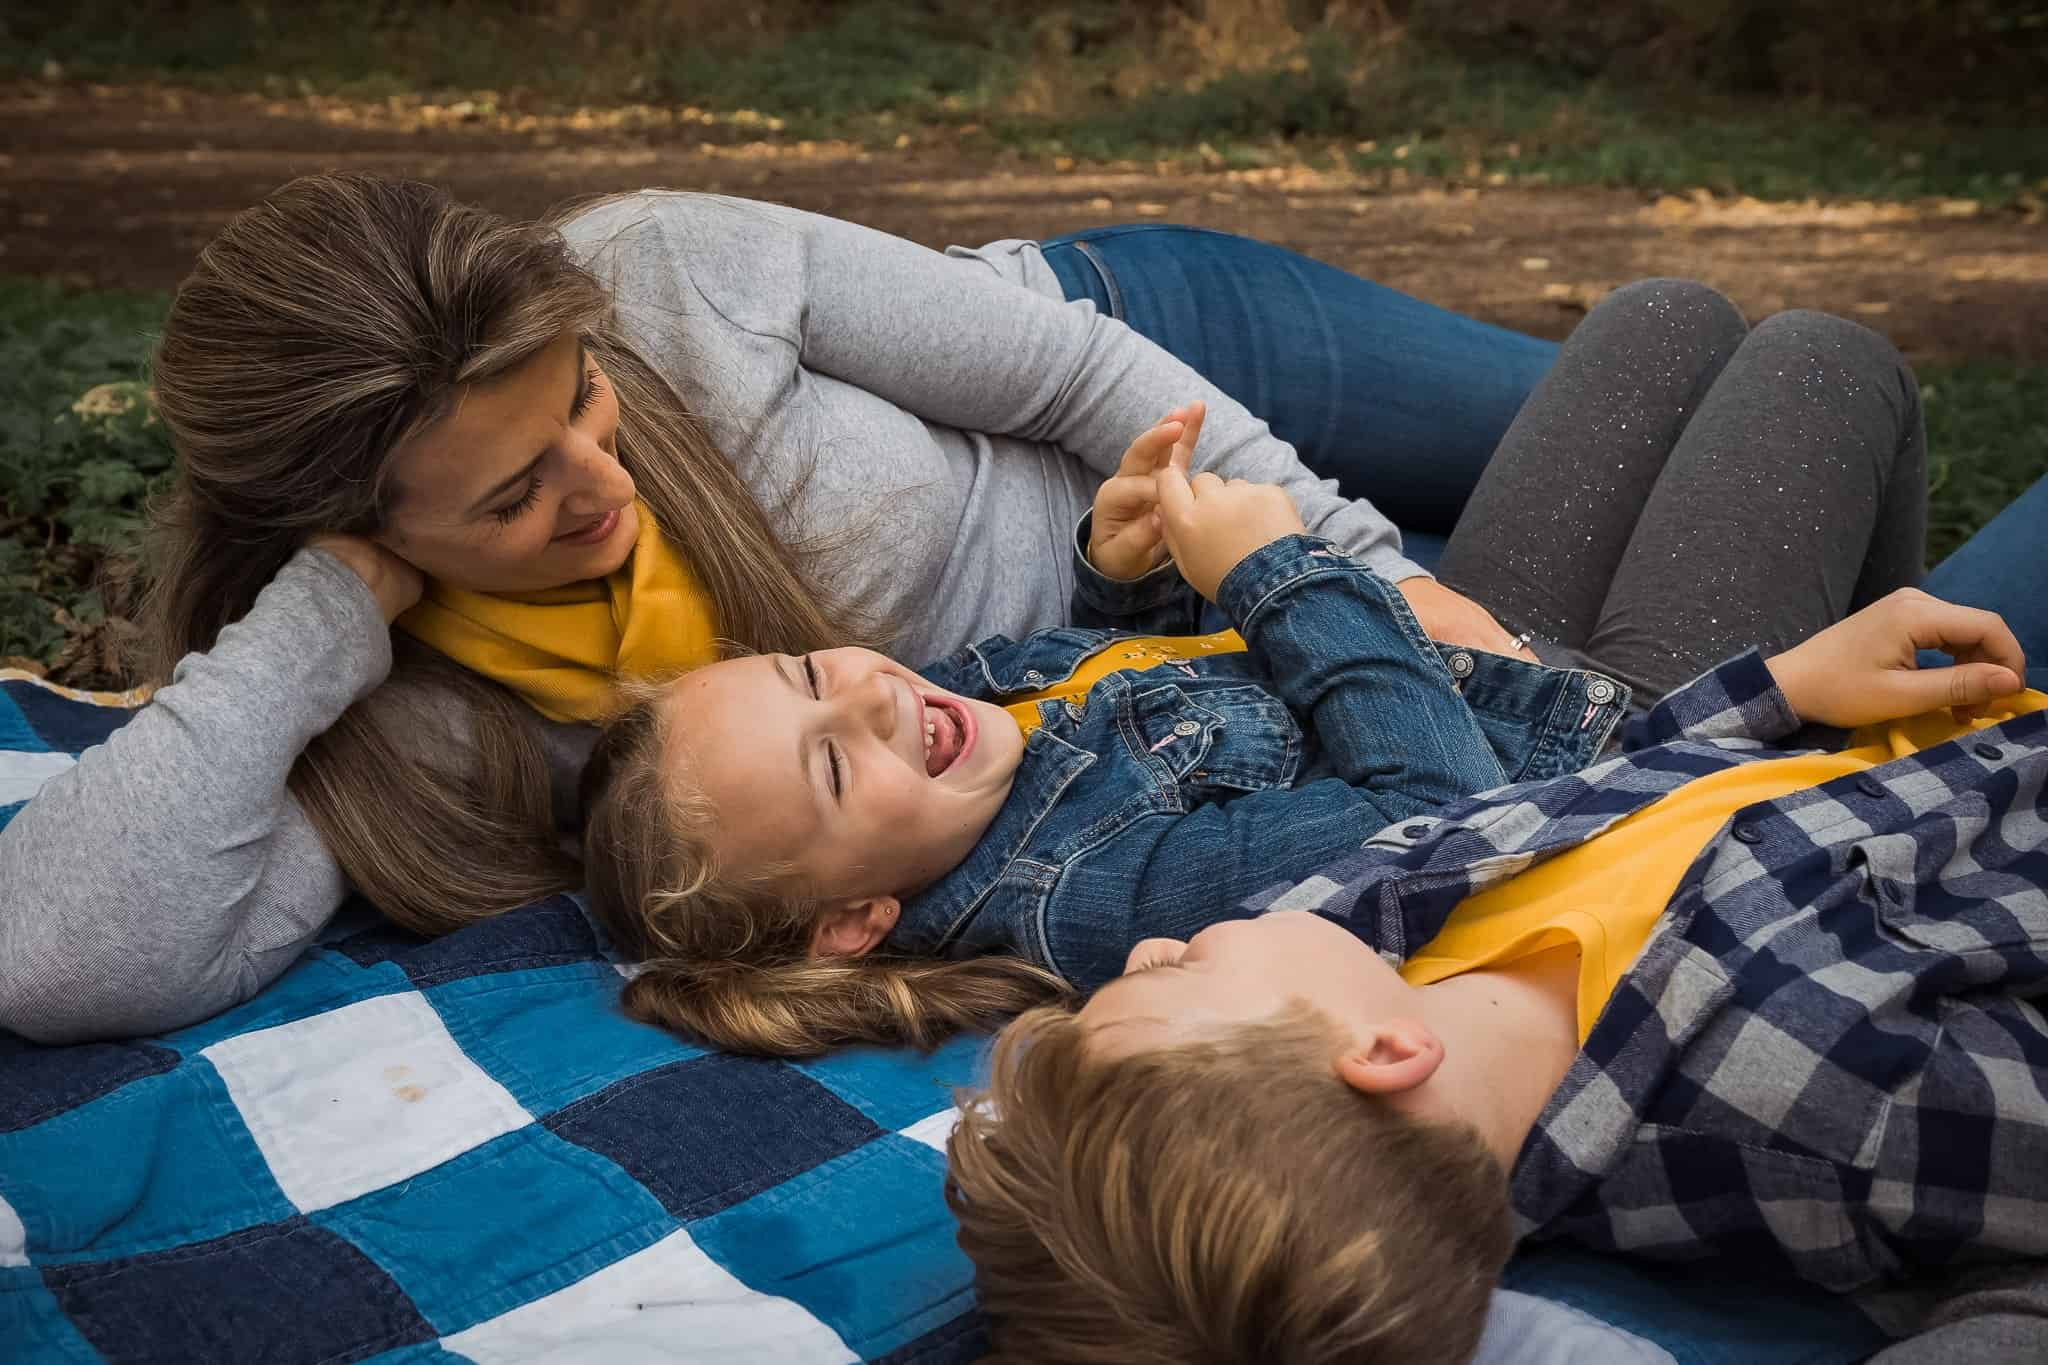 siblings laughing laying on blanket with mom